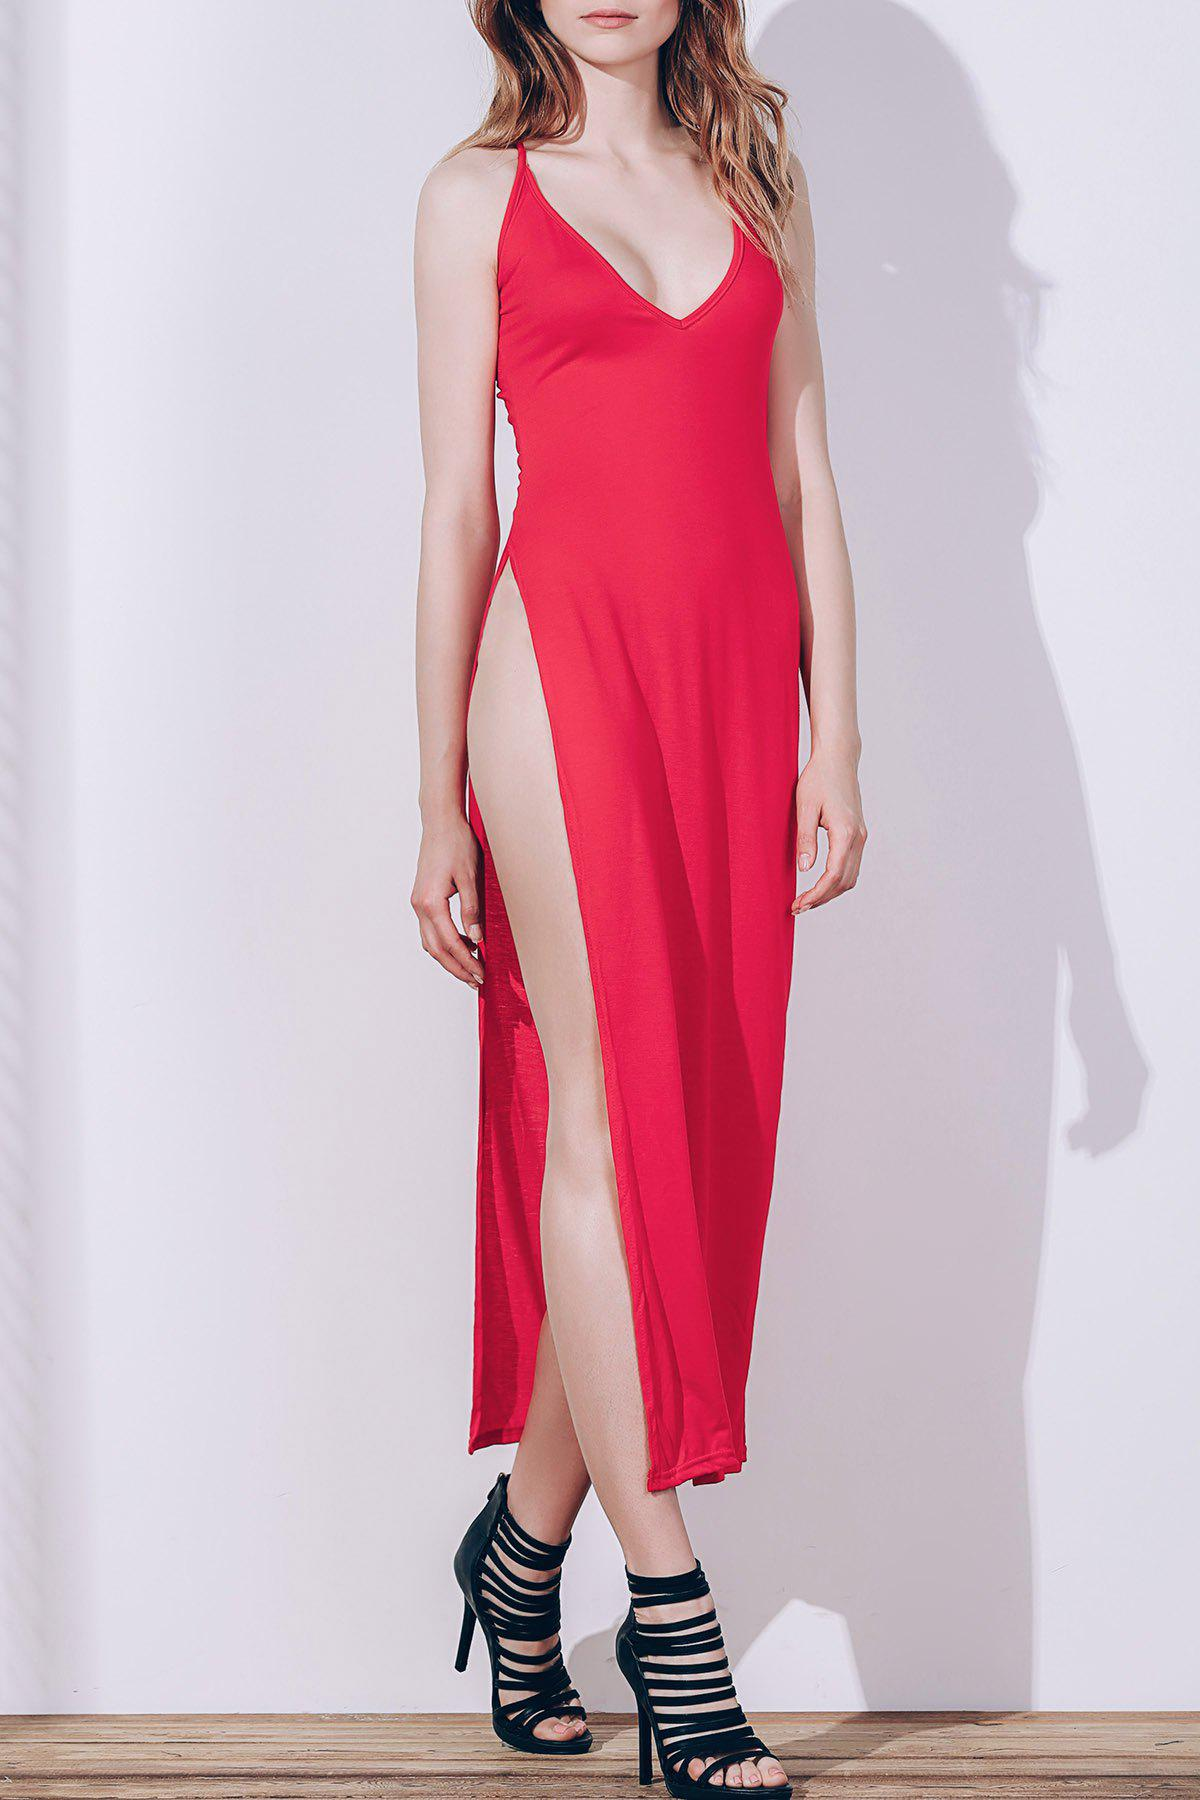 Sexy Women's Spaghetti Strap Red High Slit Dress